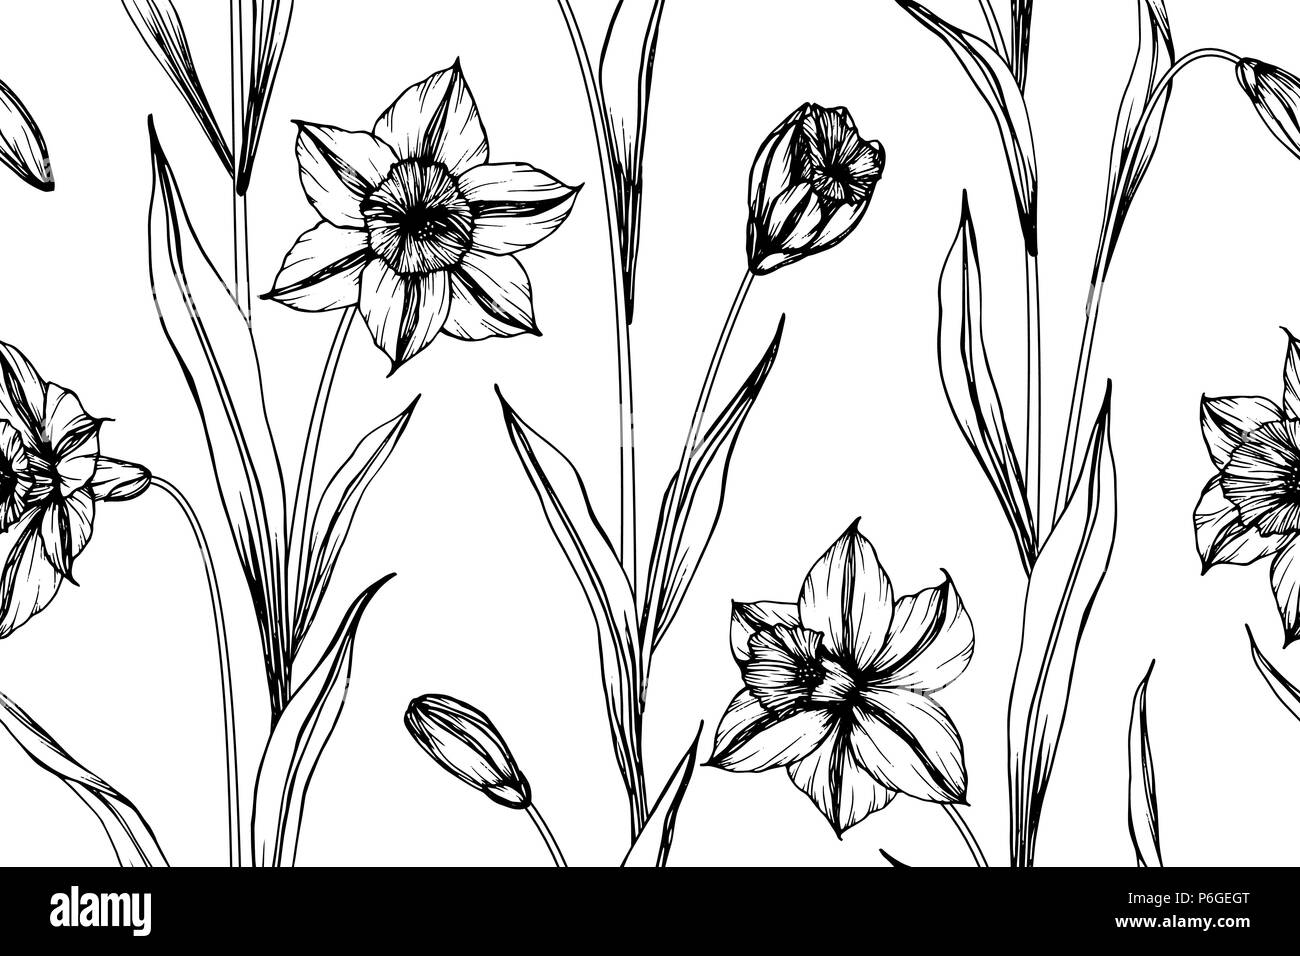 Seamless Narcissus flower pattern background. Black and white with drawing line art illustration. Stock Vector